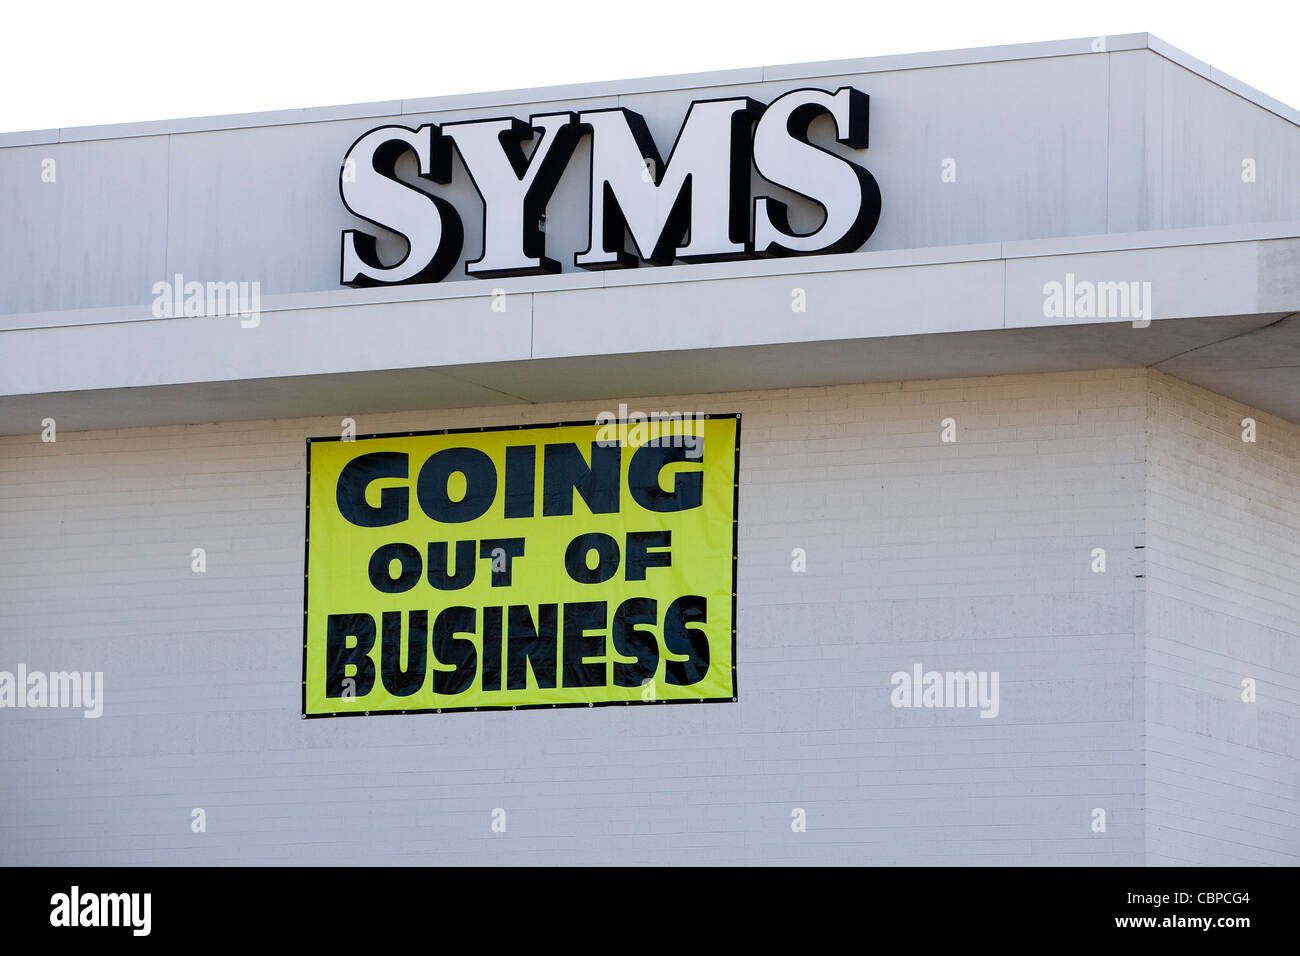 Syms clothing store nyc